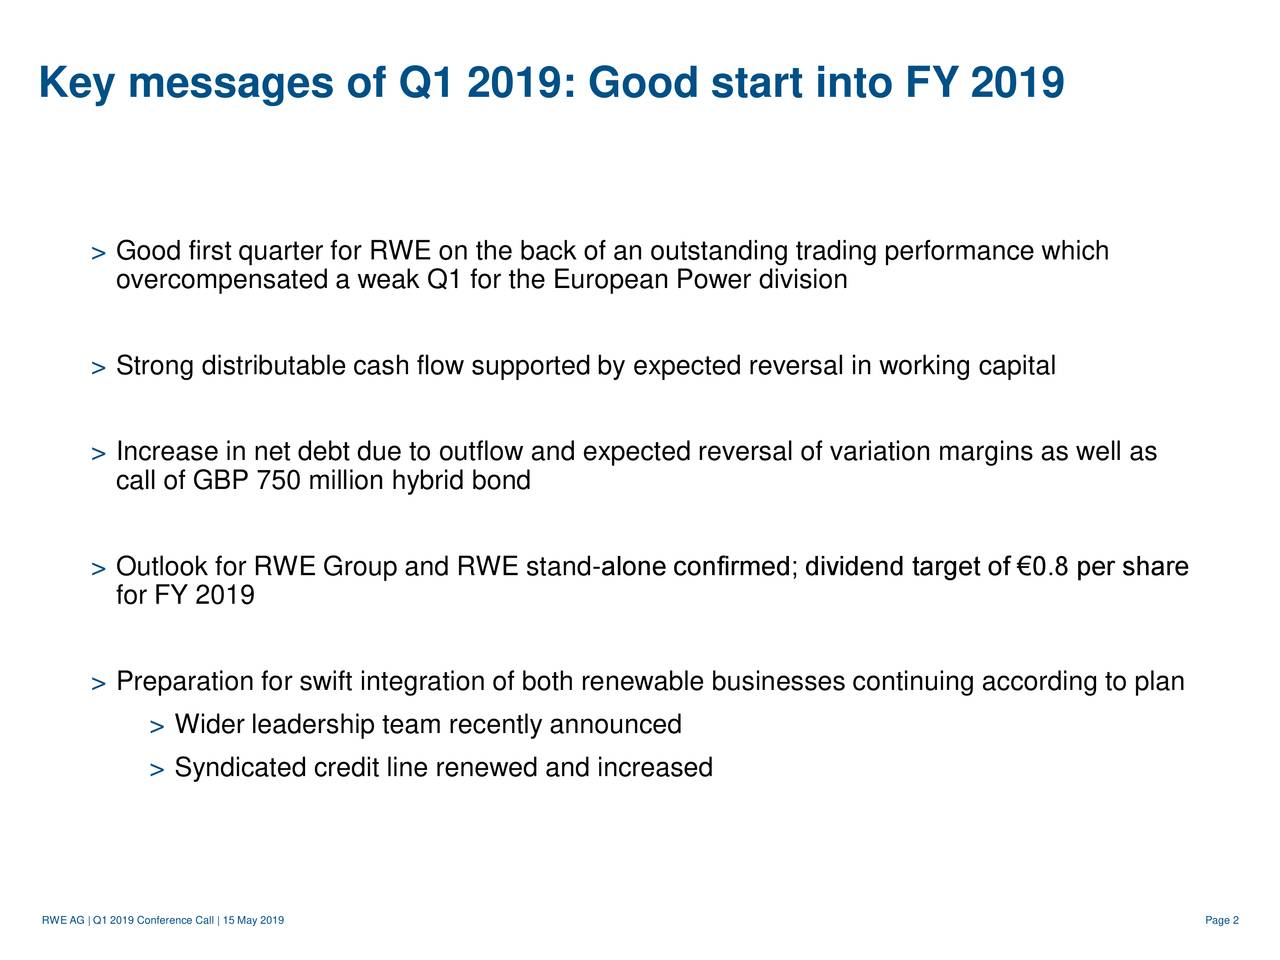 > Good first quarter for RWE on the back of an outstanding trading performance which overcompensated a weak Q1 for the European Power division > Strong distributable cash flow supported by expected reversal in working capital > Increase in net debt due to outflow and expected reversal of variation margins as well as call of GBP 750 million hybrid bond > Outlook for RWE Group and RWE stand-alone confirmed; dividend target of €0.8 per share for FY 2019 > Preparation for swift integration of both renewable businesses continuing according to plan > Wider leadership team recently announced > Syndicated credit line renewed and increased RWE AG   Q1 2019 Conference Call   15 May 2019 Page 2